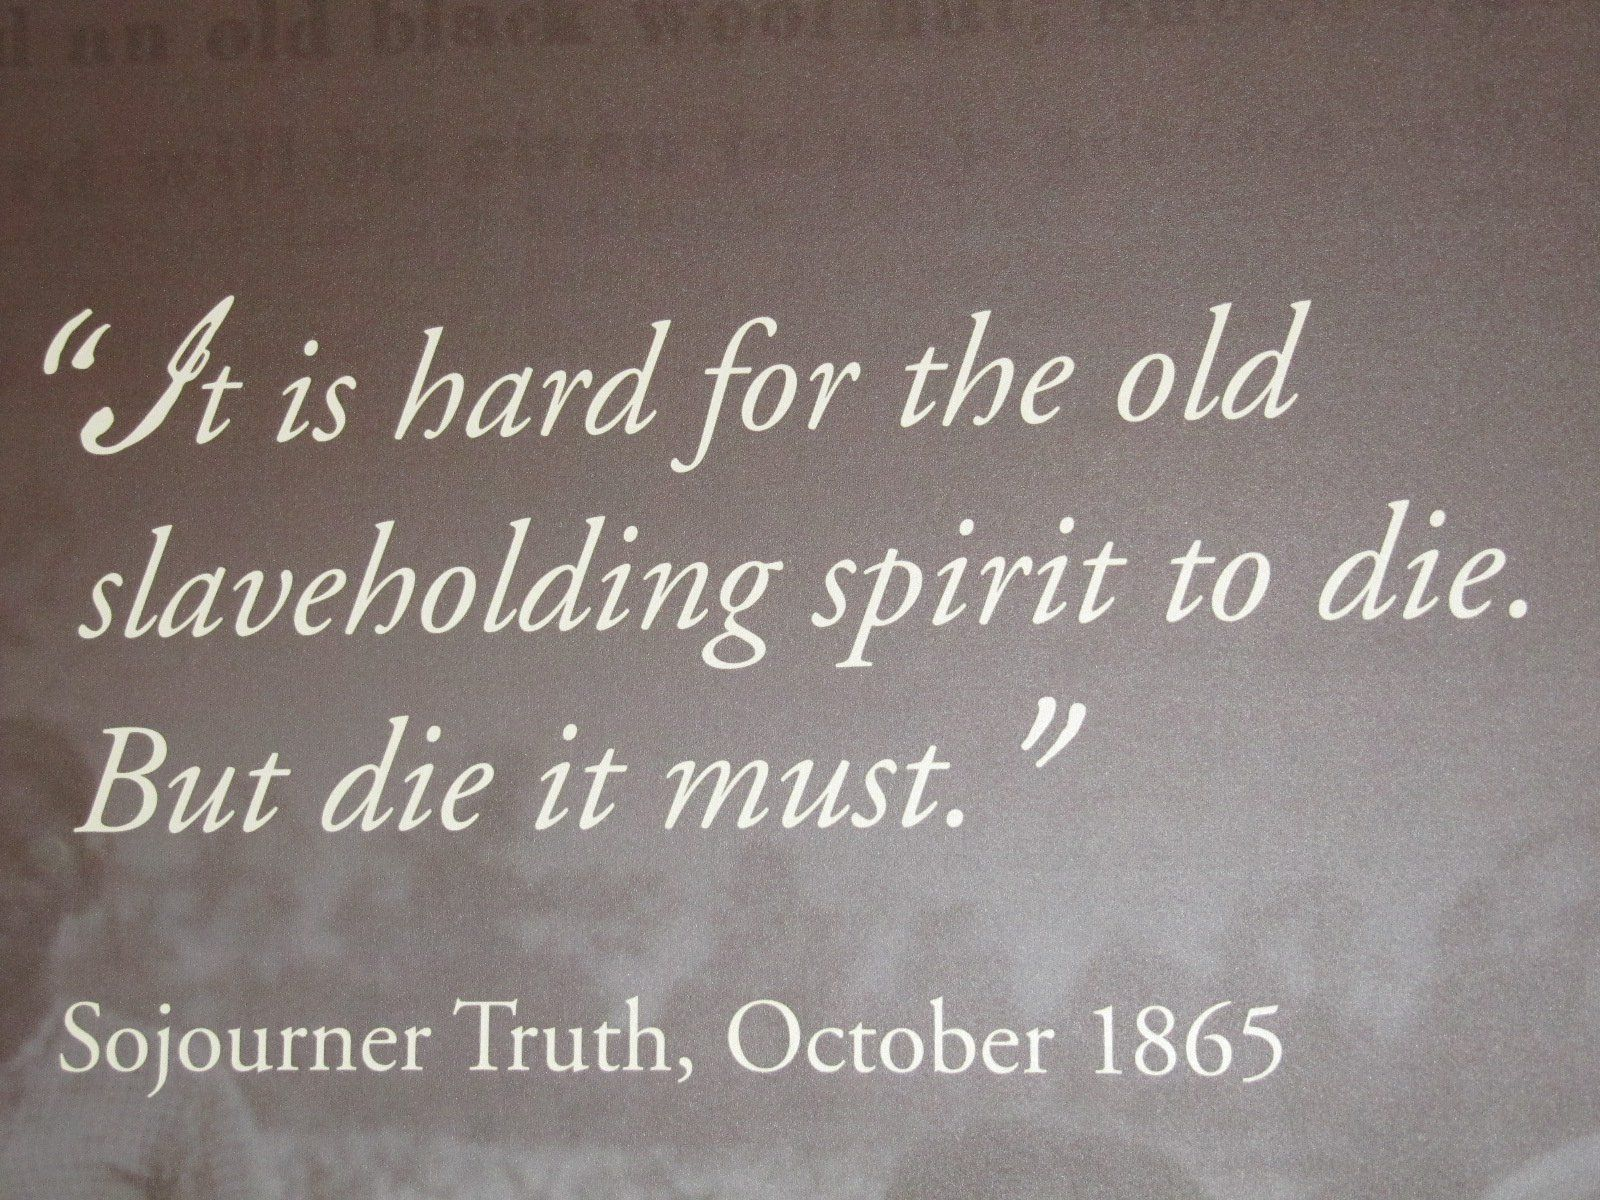 Slavery Quotes Sojourner Truth Quotes About Slavery 46584  Nanozine  Good